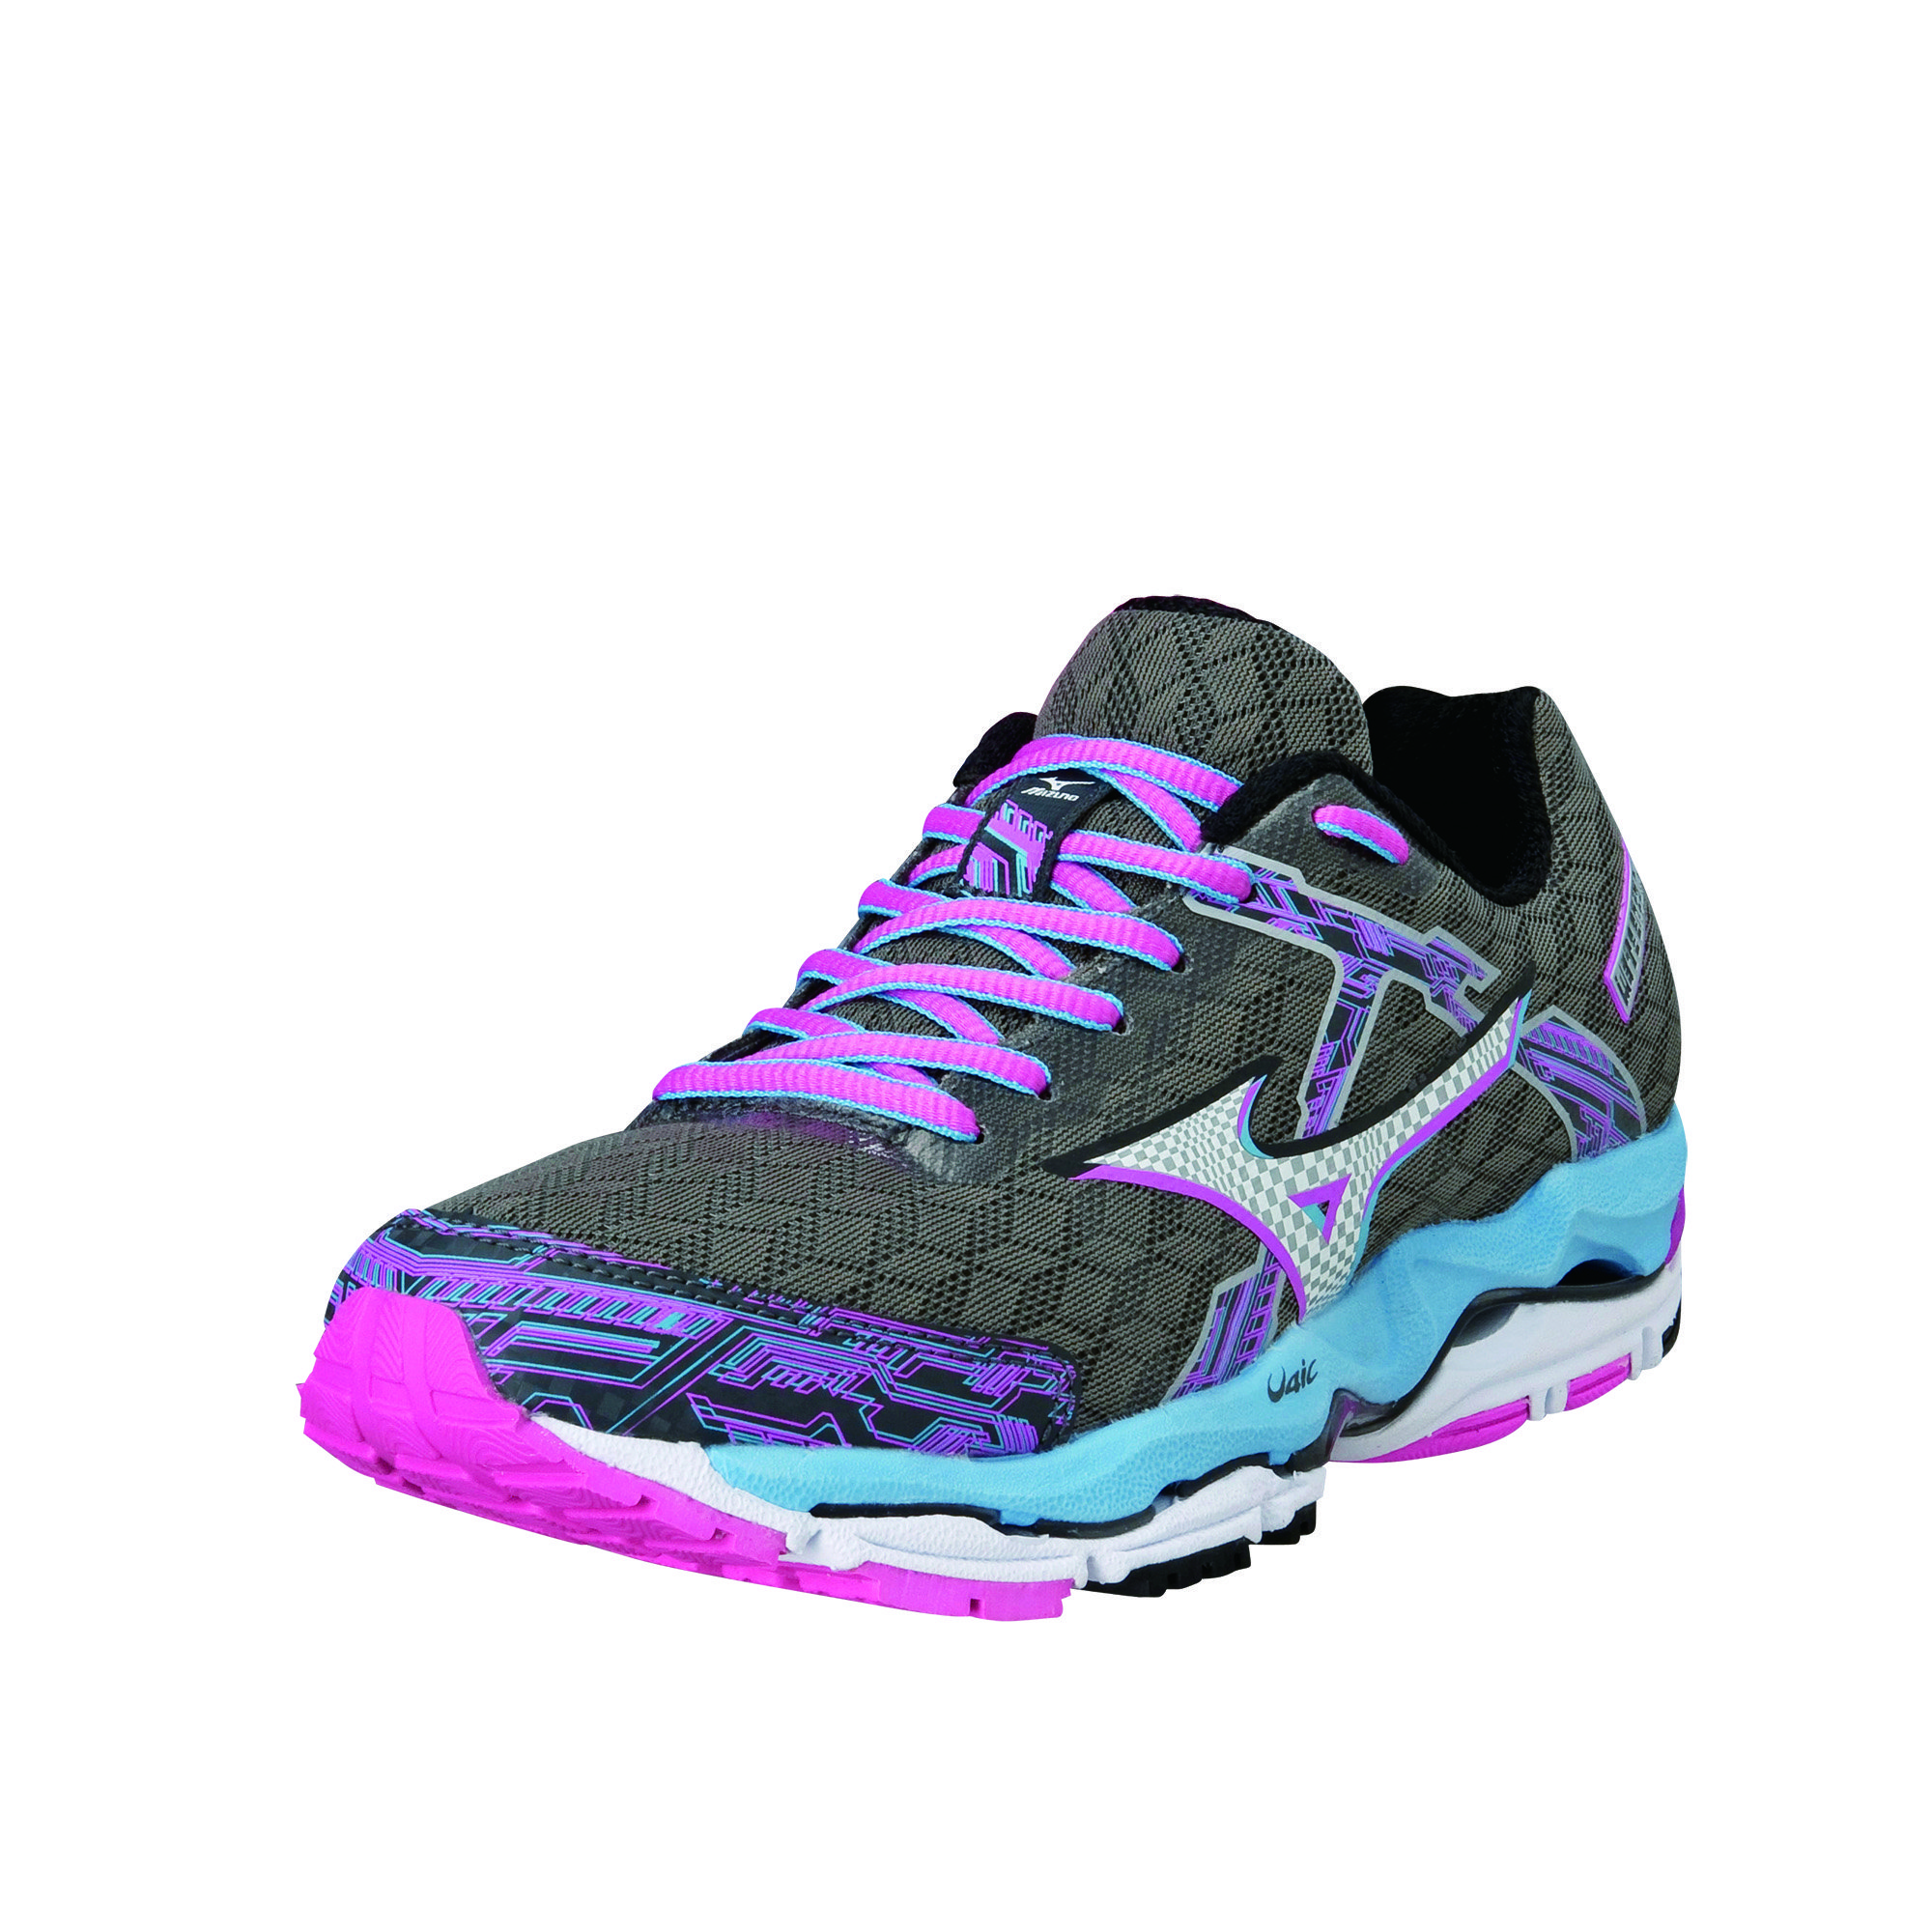 Mizuno Lady Wave Enigma 4 in Grau Pink